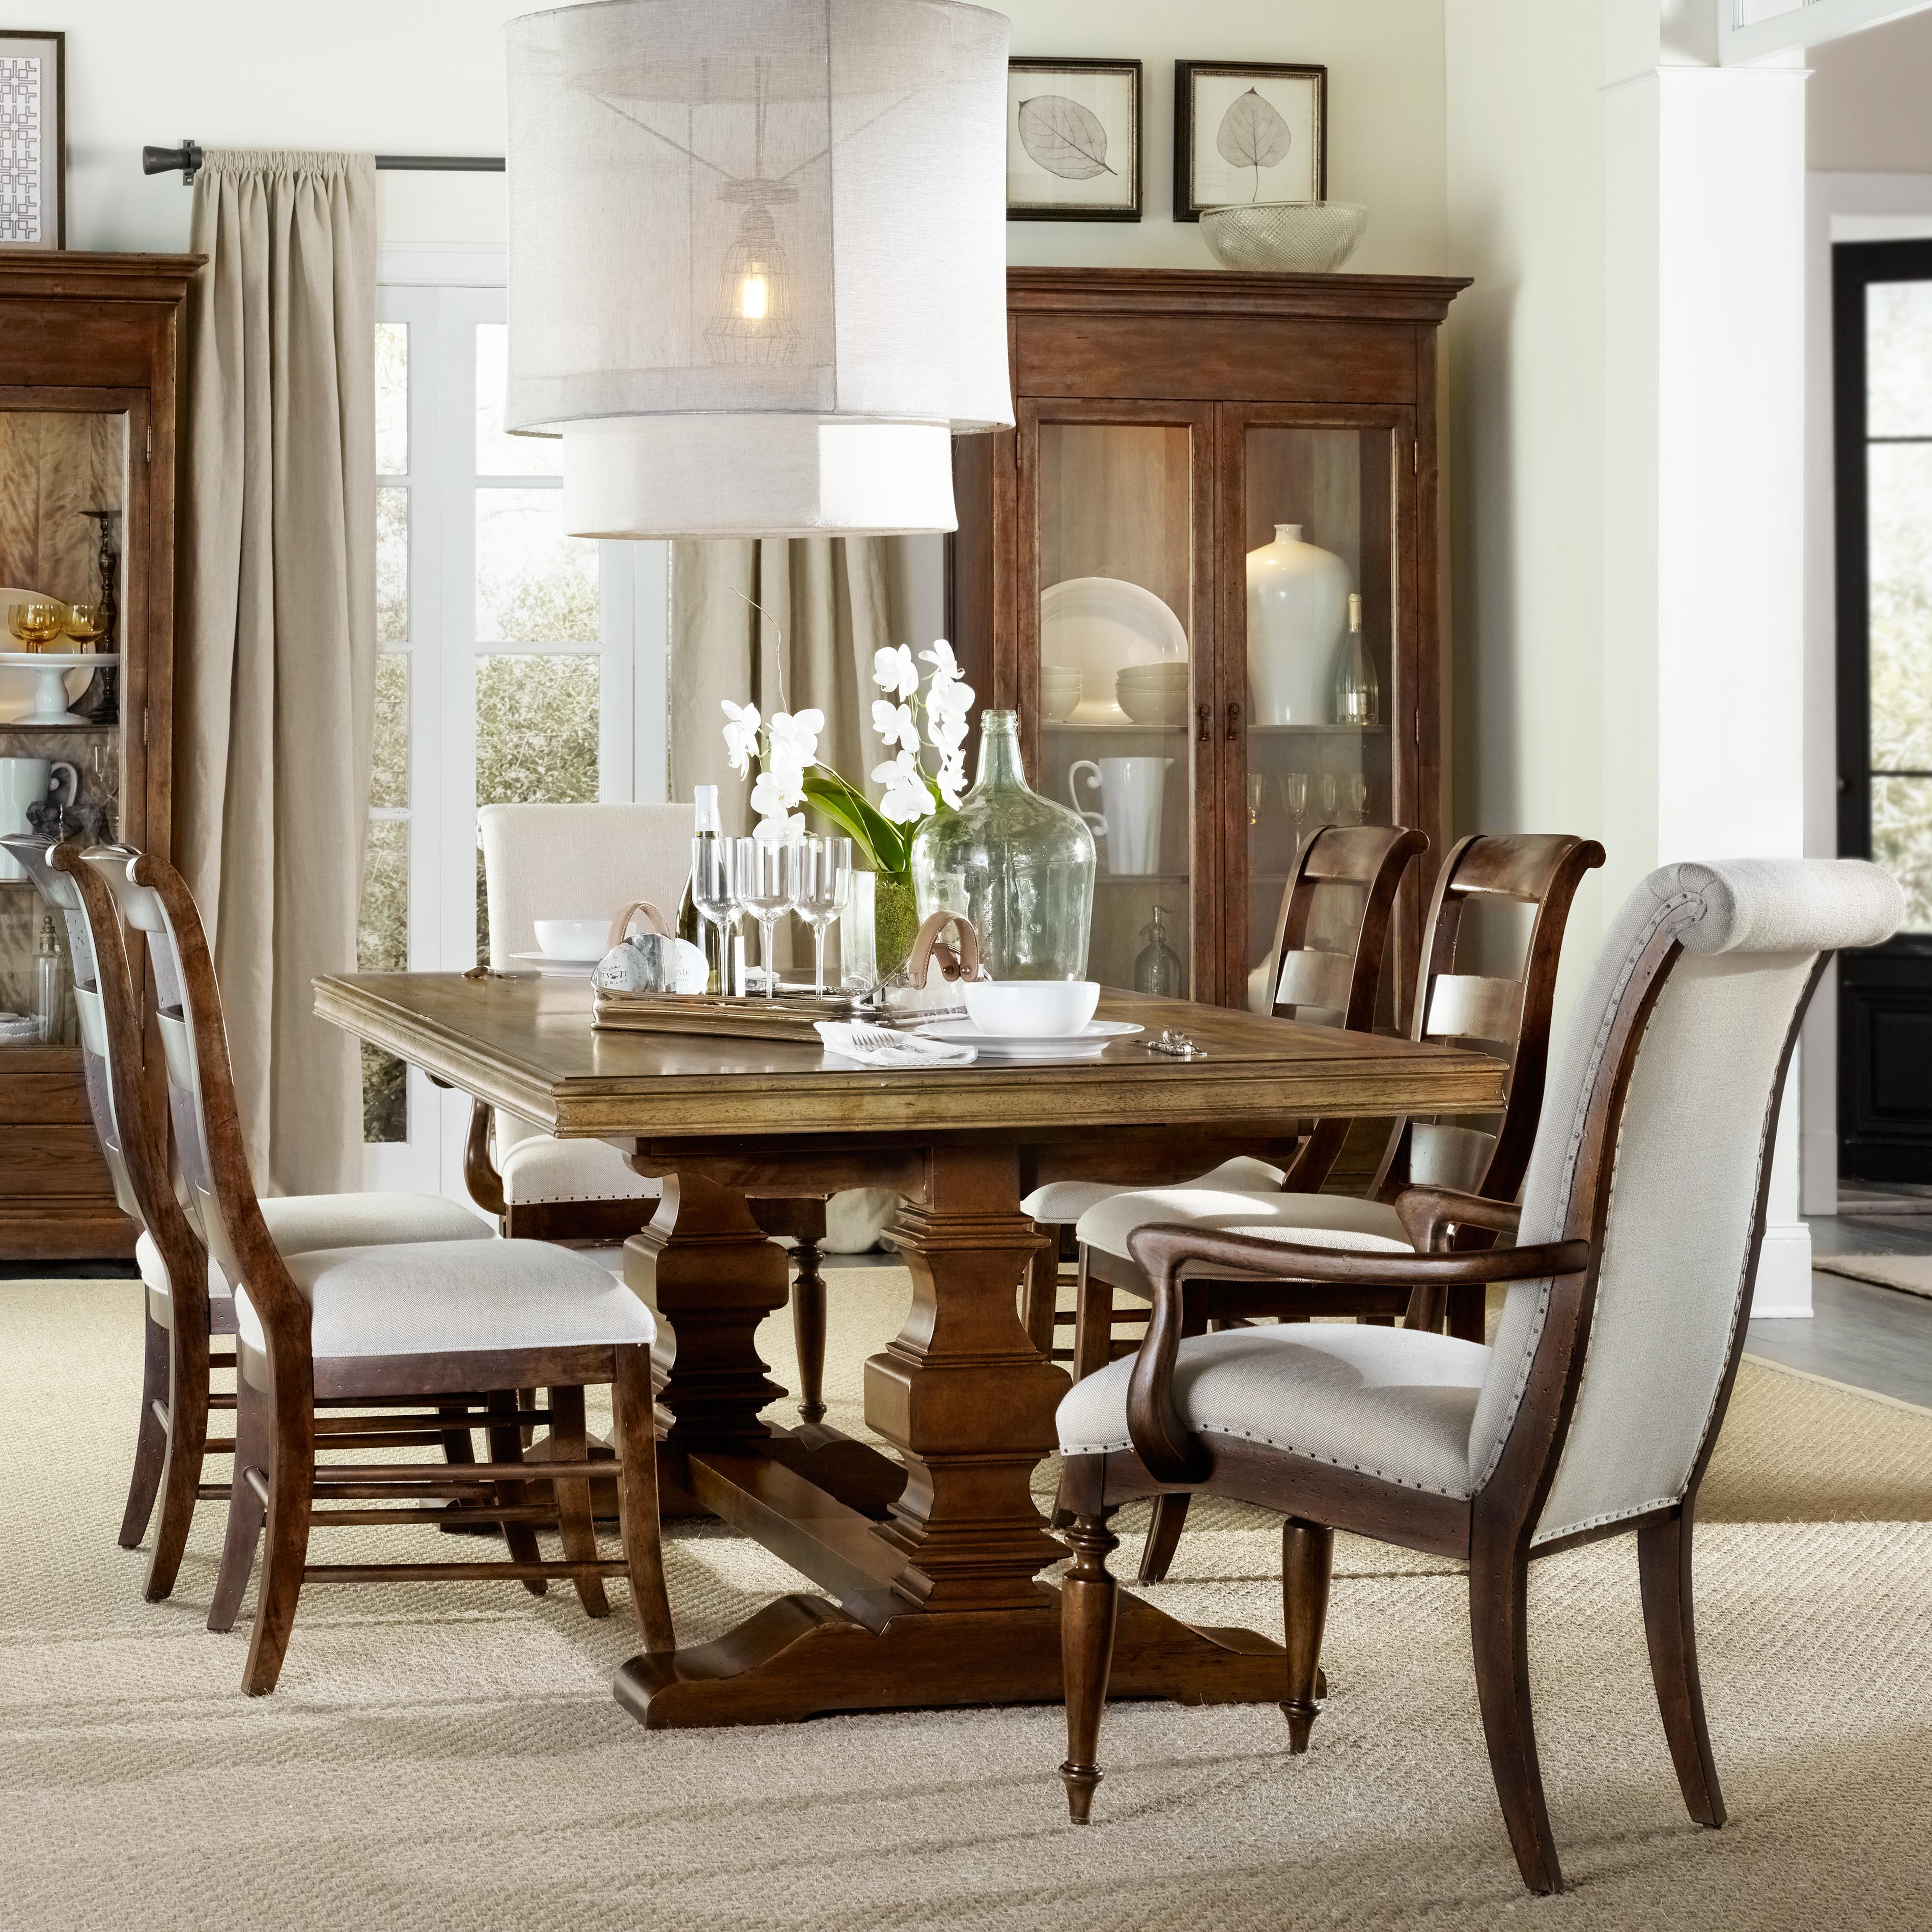 Hooker Furniture Archivist 7 Piece Dining Set With Trestle Table intended for 7 Piece Living Room Sets